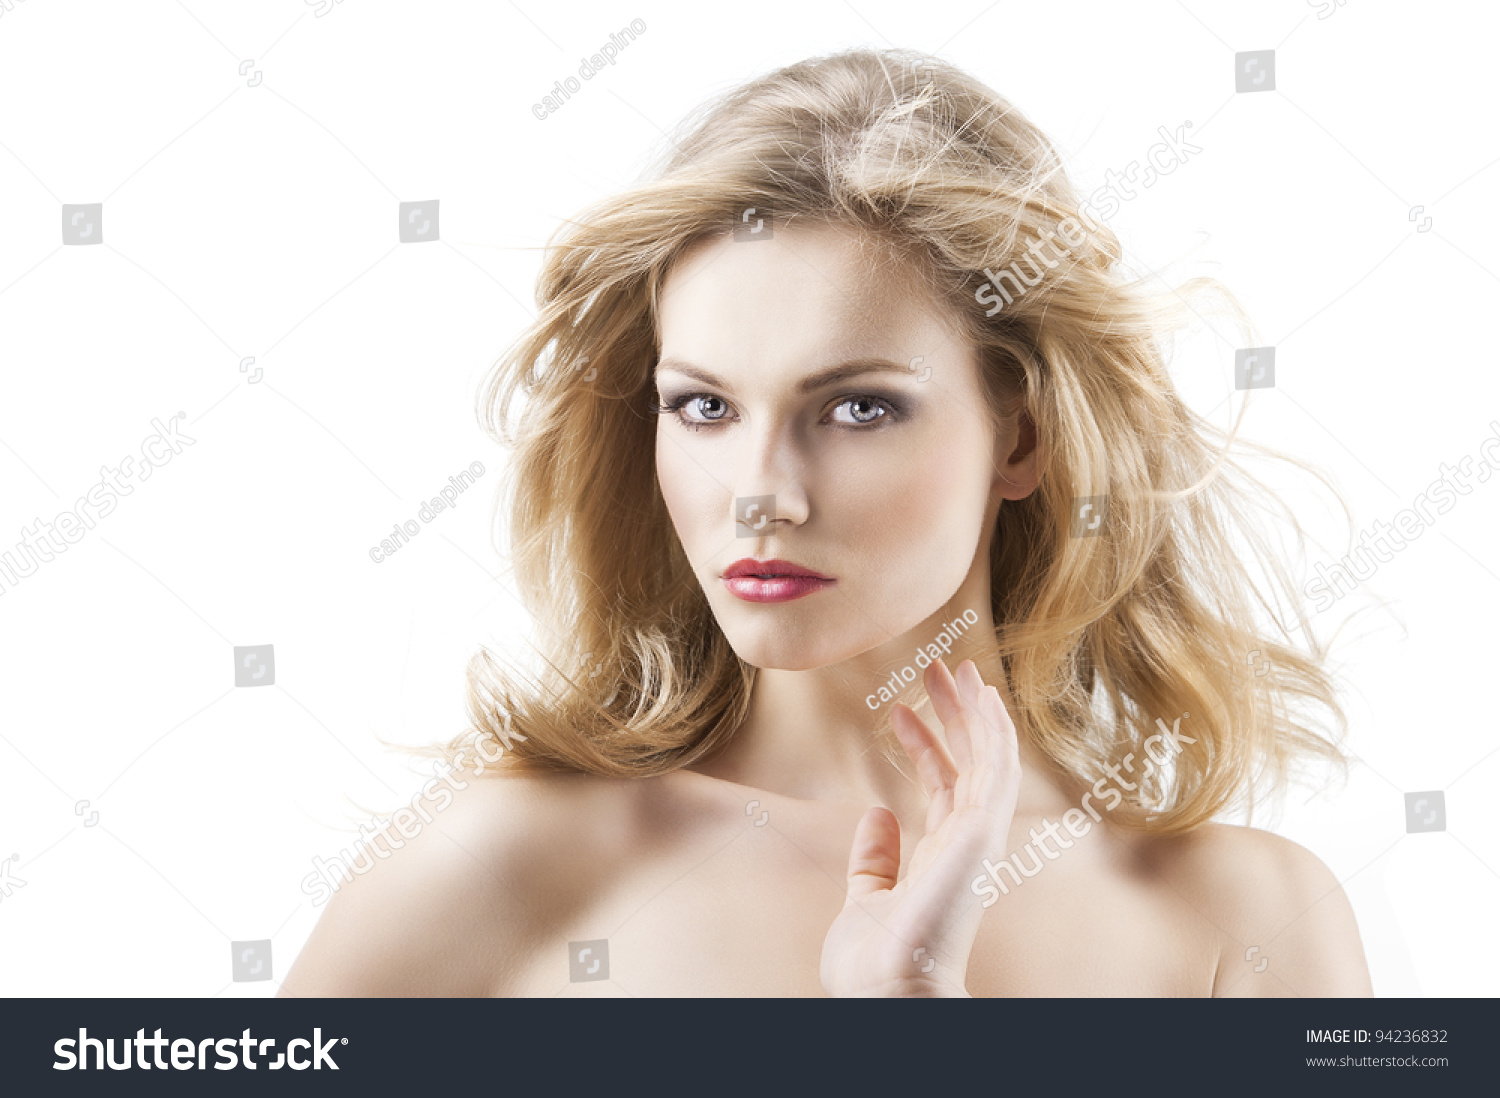 Classic Beauty Portrait Of Young Sexy Girl With Hairstyle And Flying